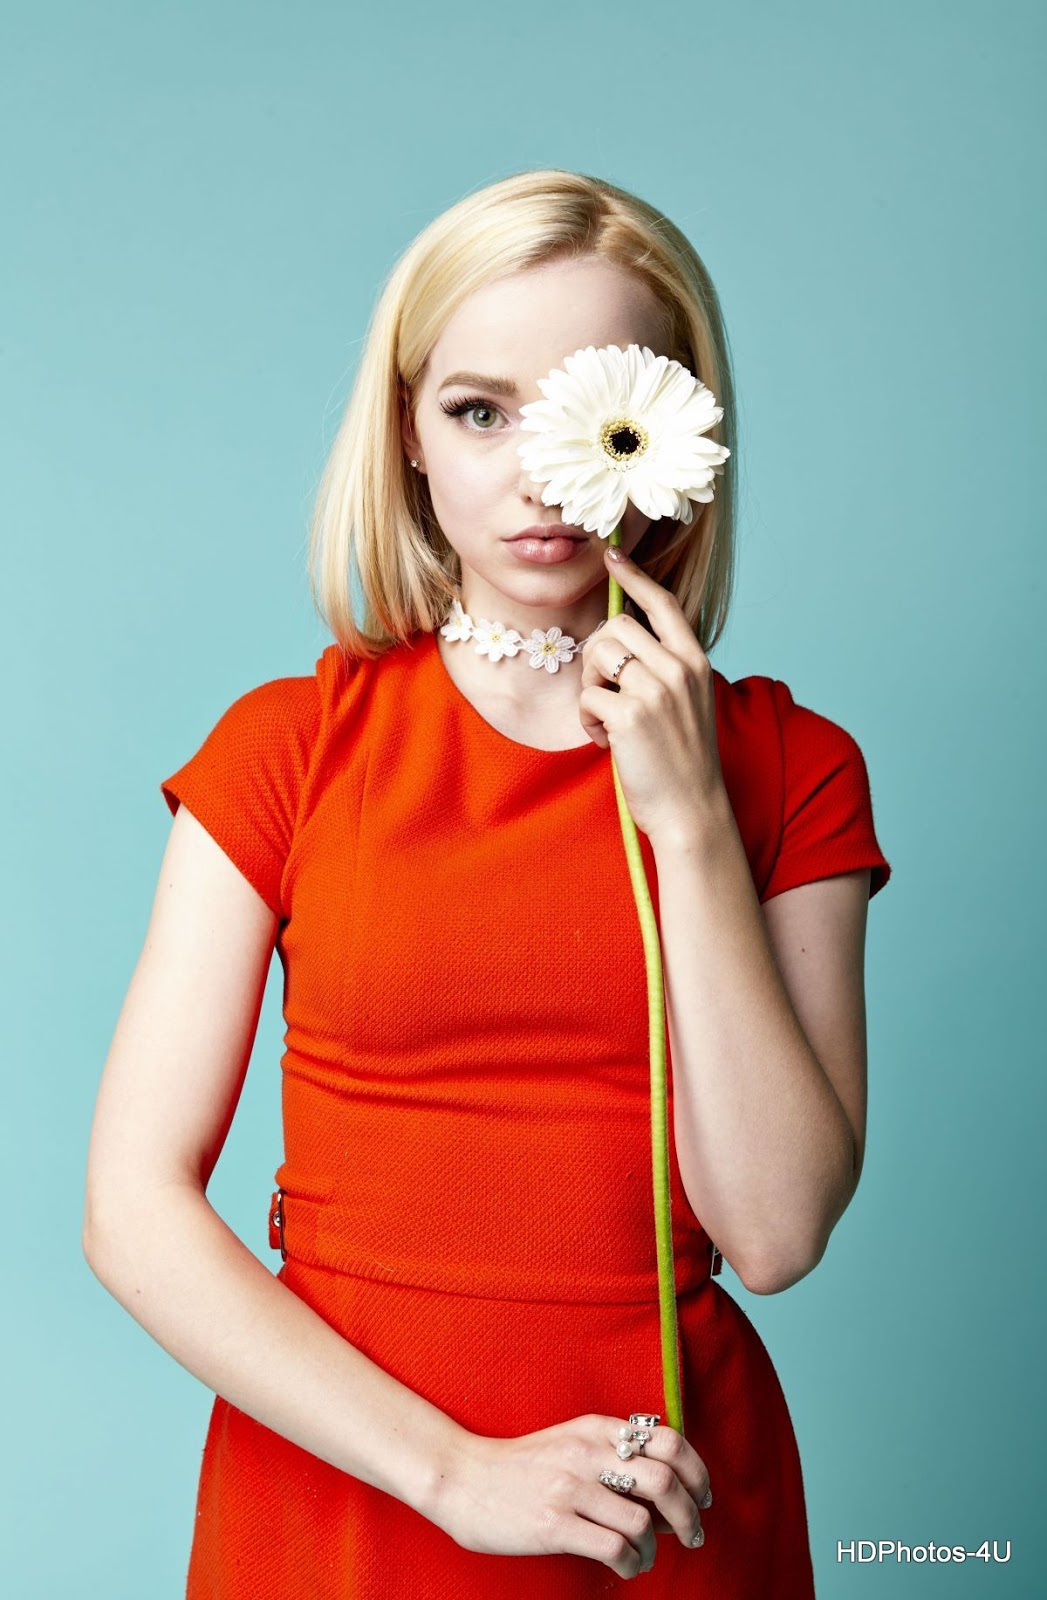 Dove Cameron HQ Photo Shoot for Tigerbeat Magazine, May 2016 Issue